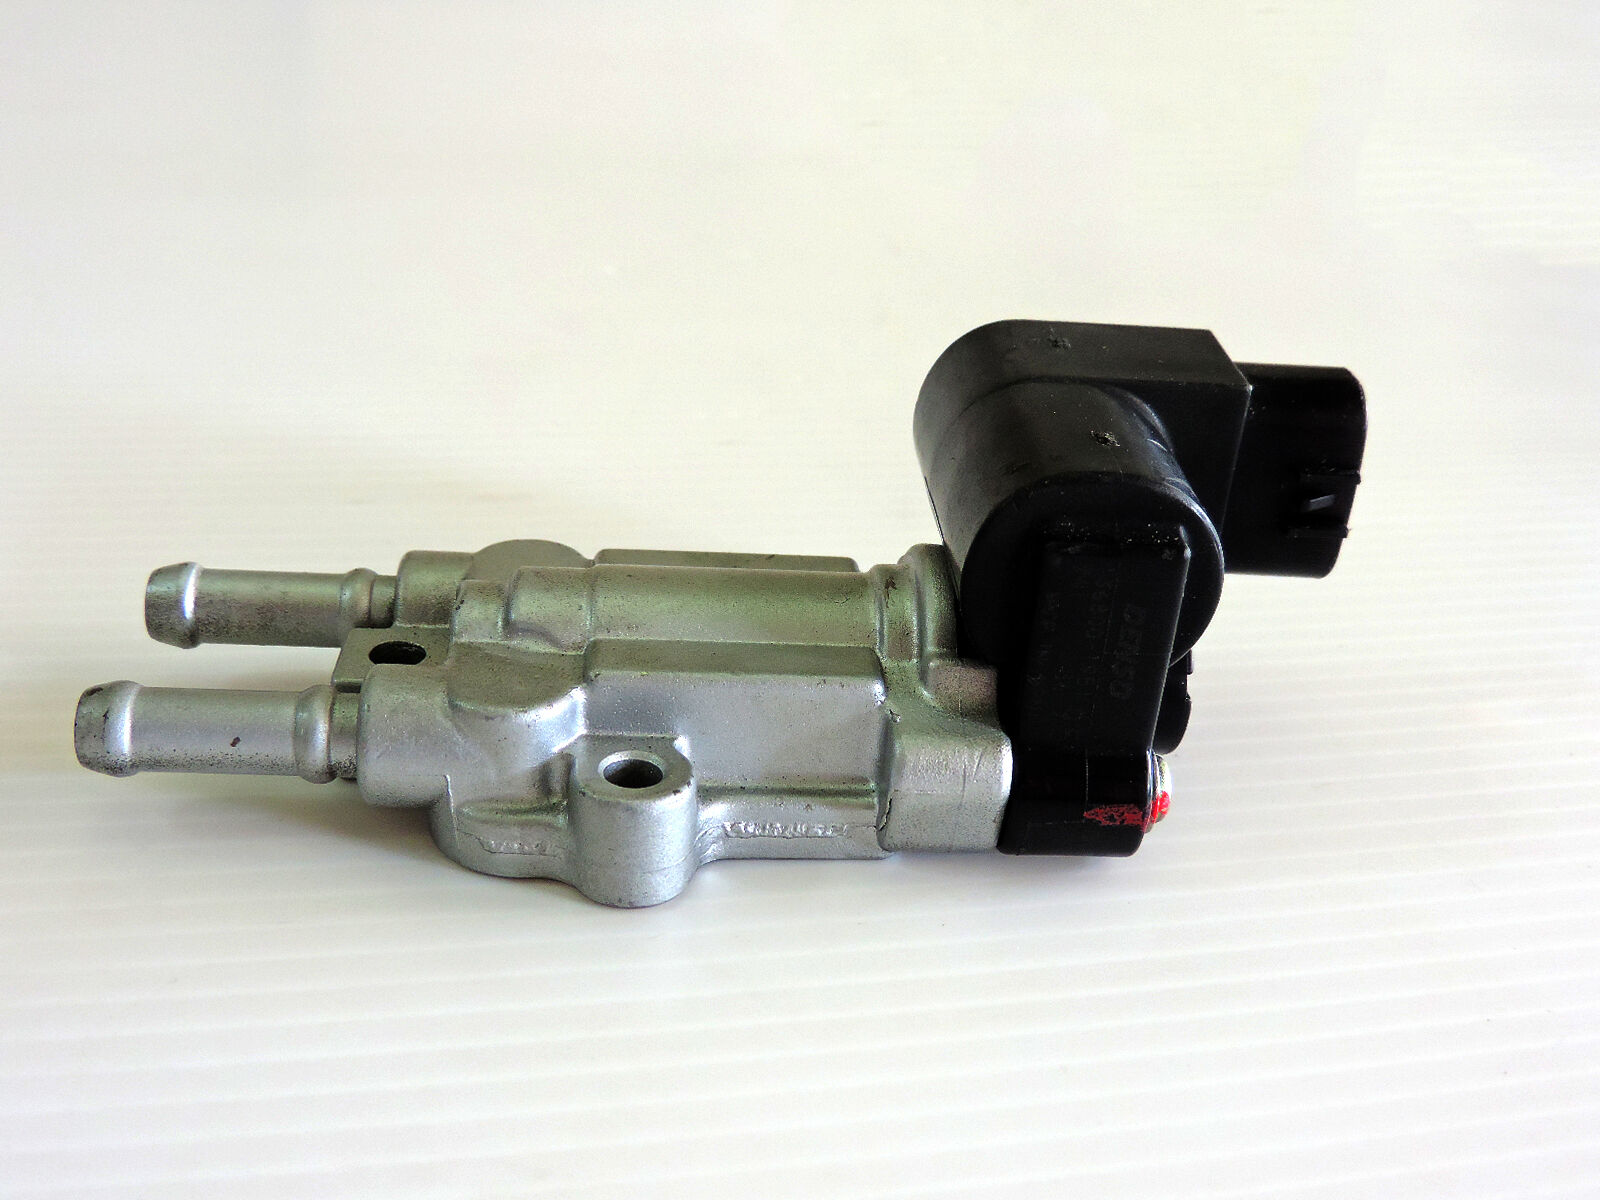 Details about Genuine Honda 2002-2008 FIT IACV idle air control valve GD  GD1 JAZZ